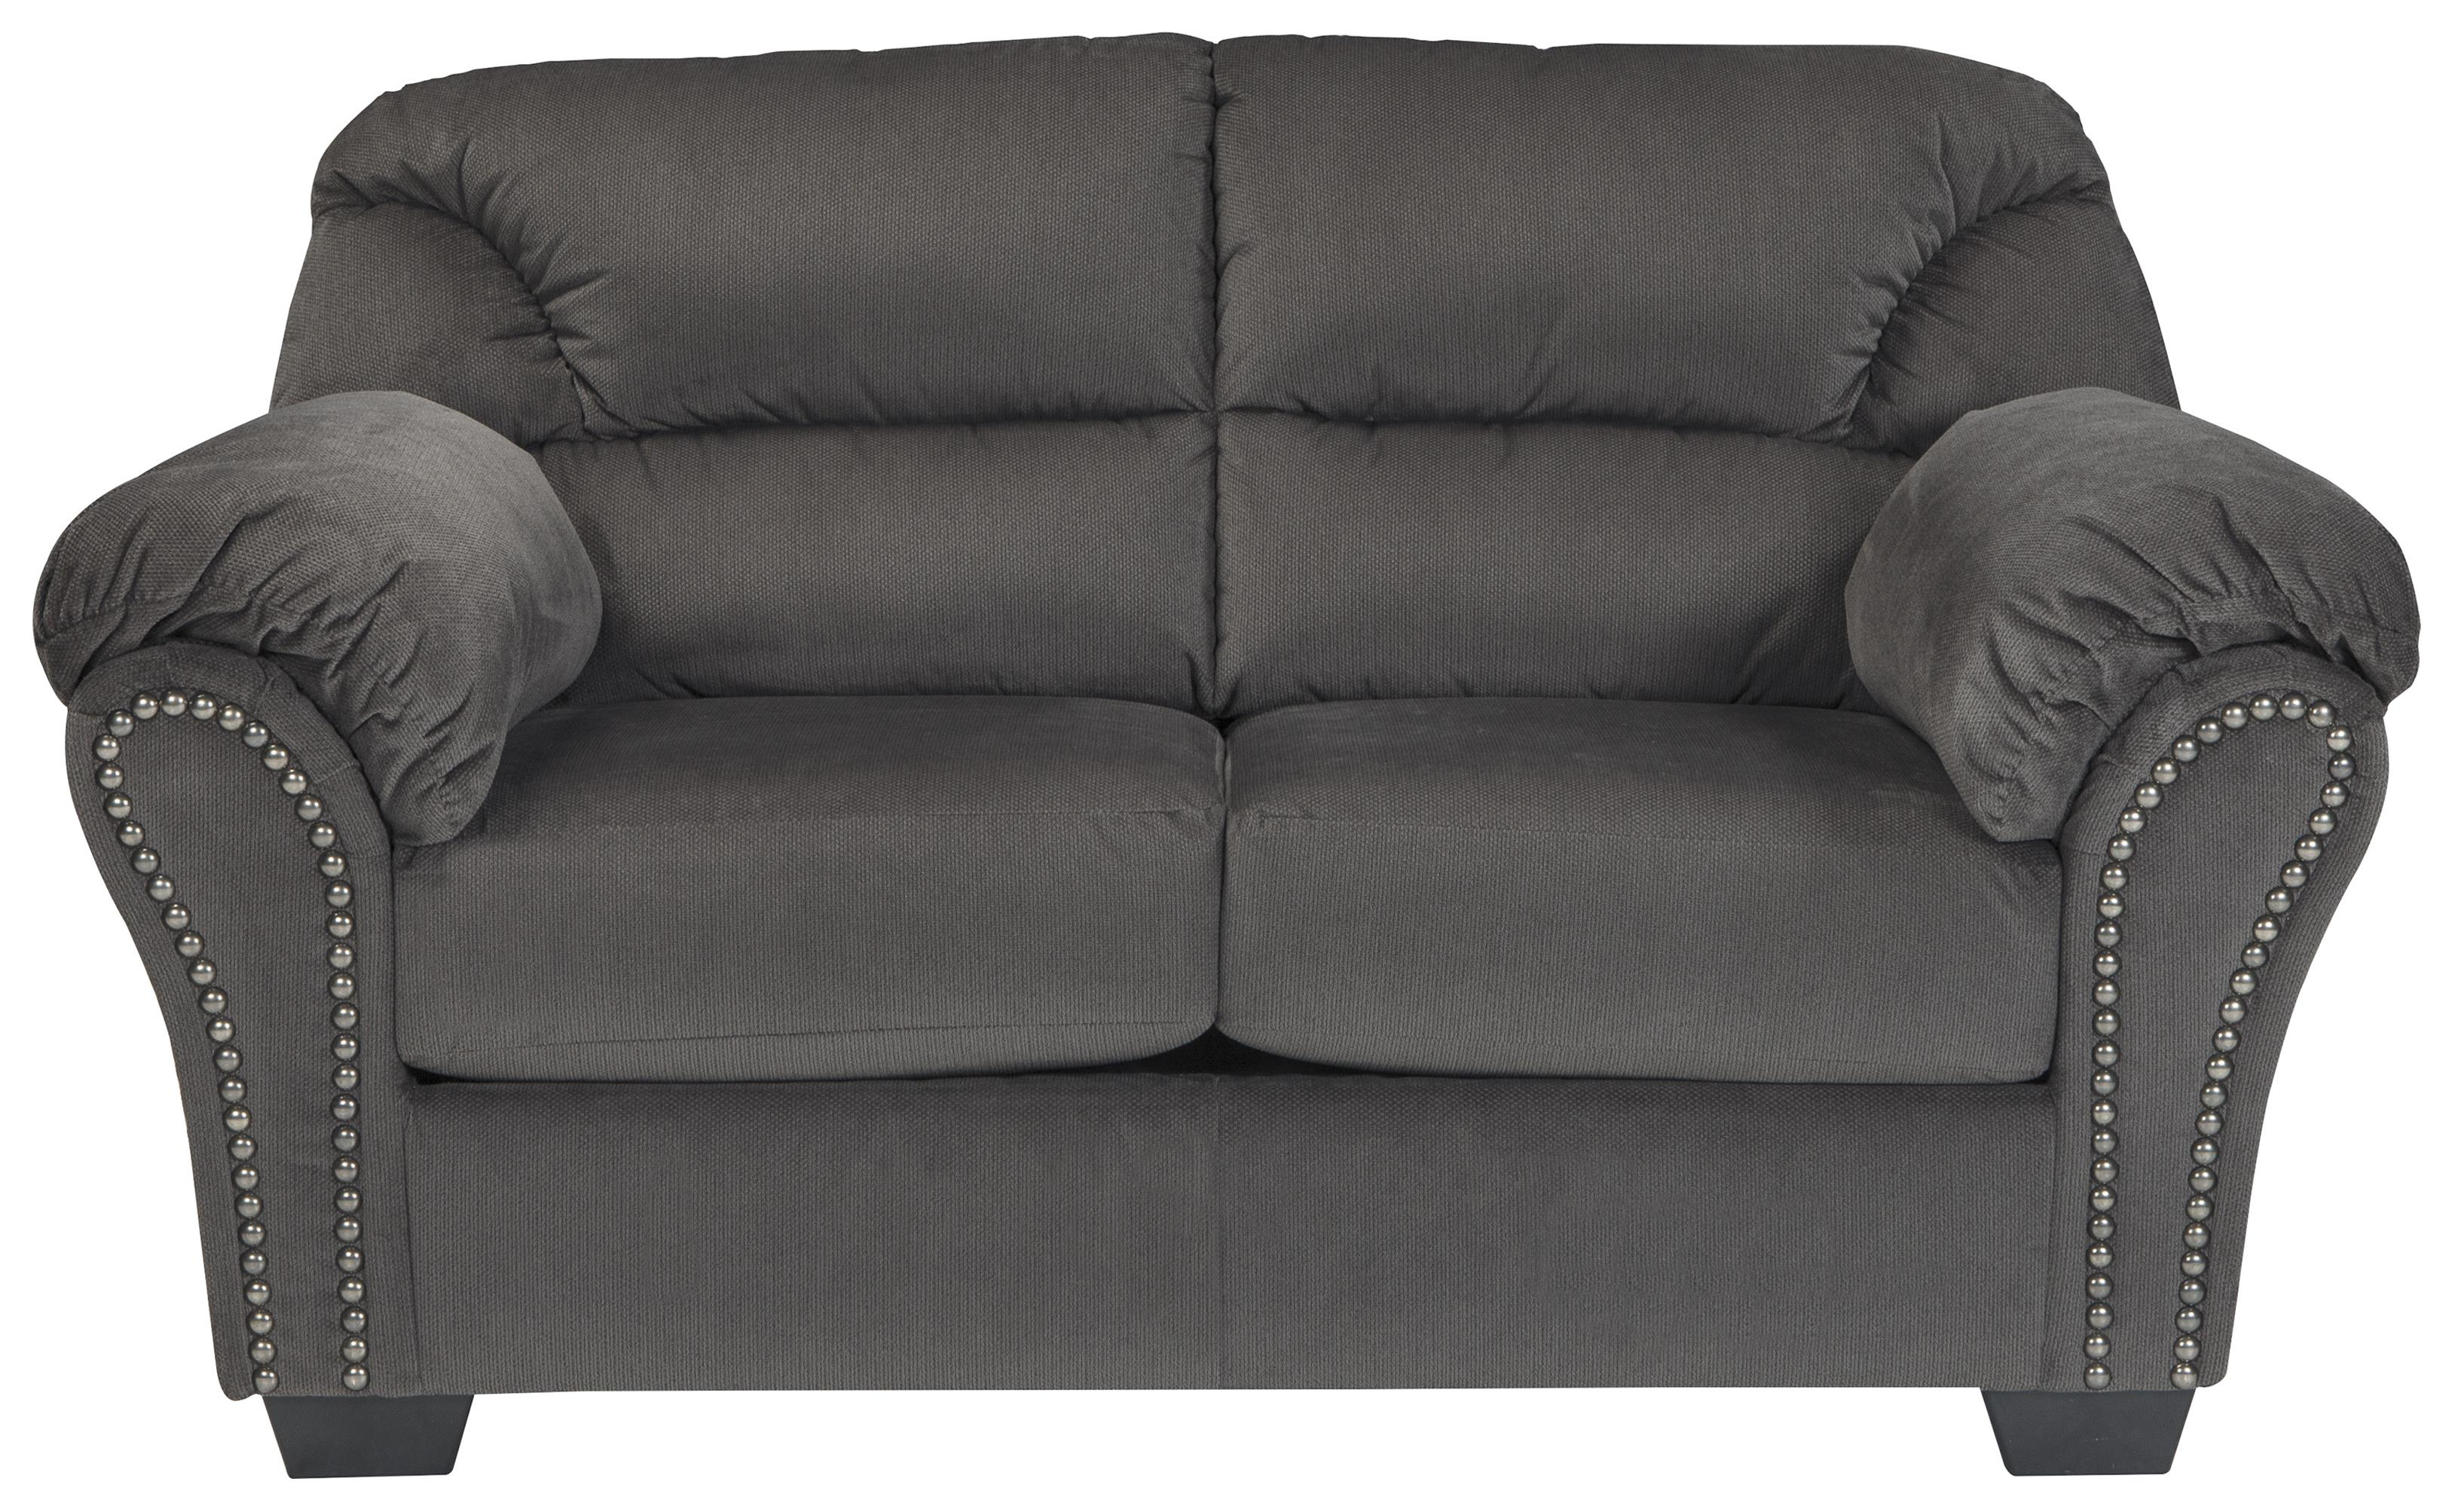 Signature Design by Ashley Kinlock Loveseat - Item Number: 3340035